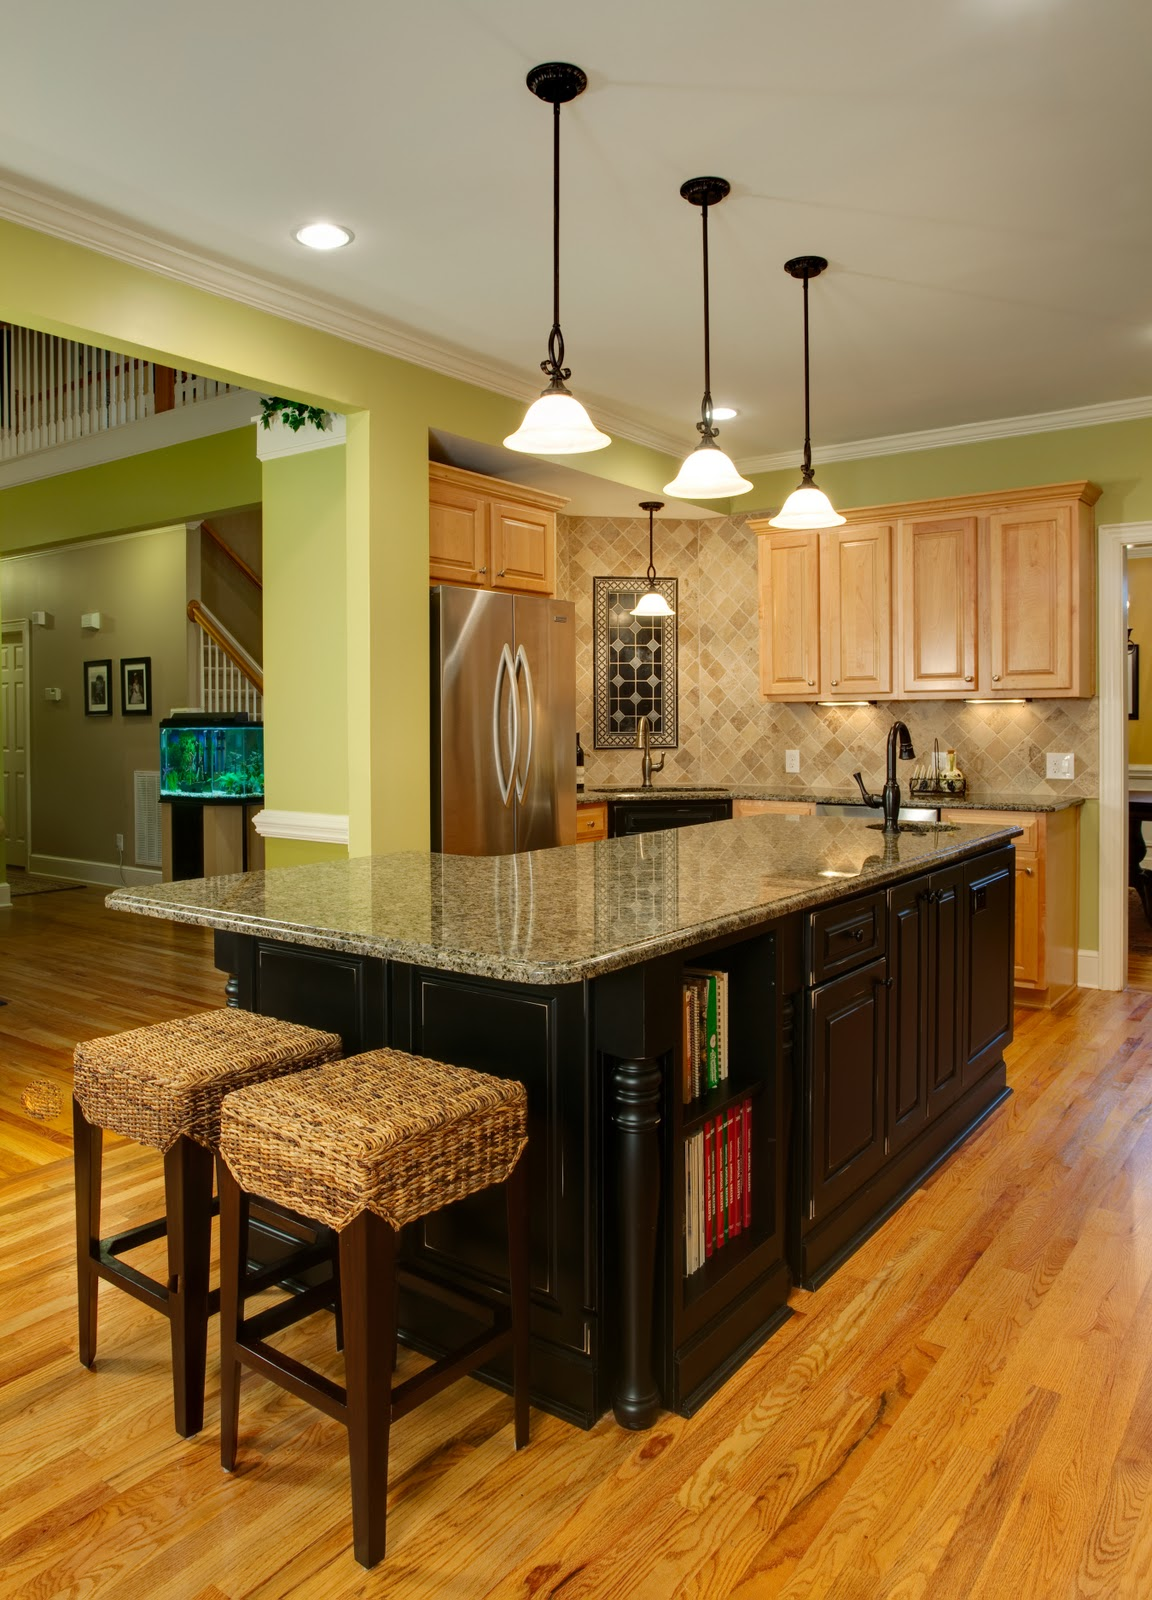 Case Handyman Remodeling: l shaped kitchen designs with island